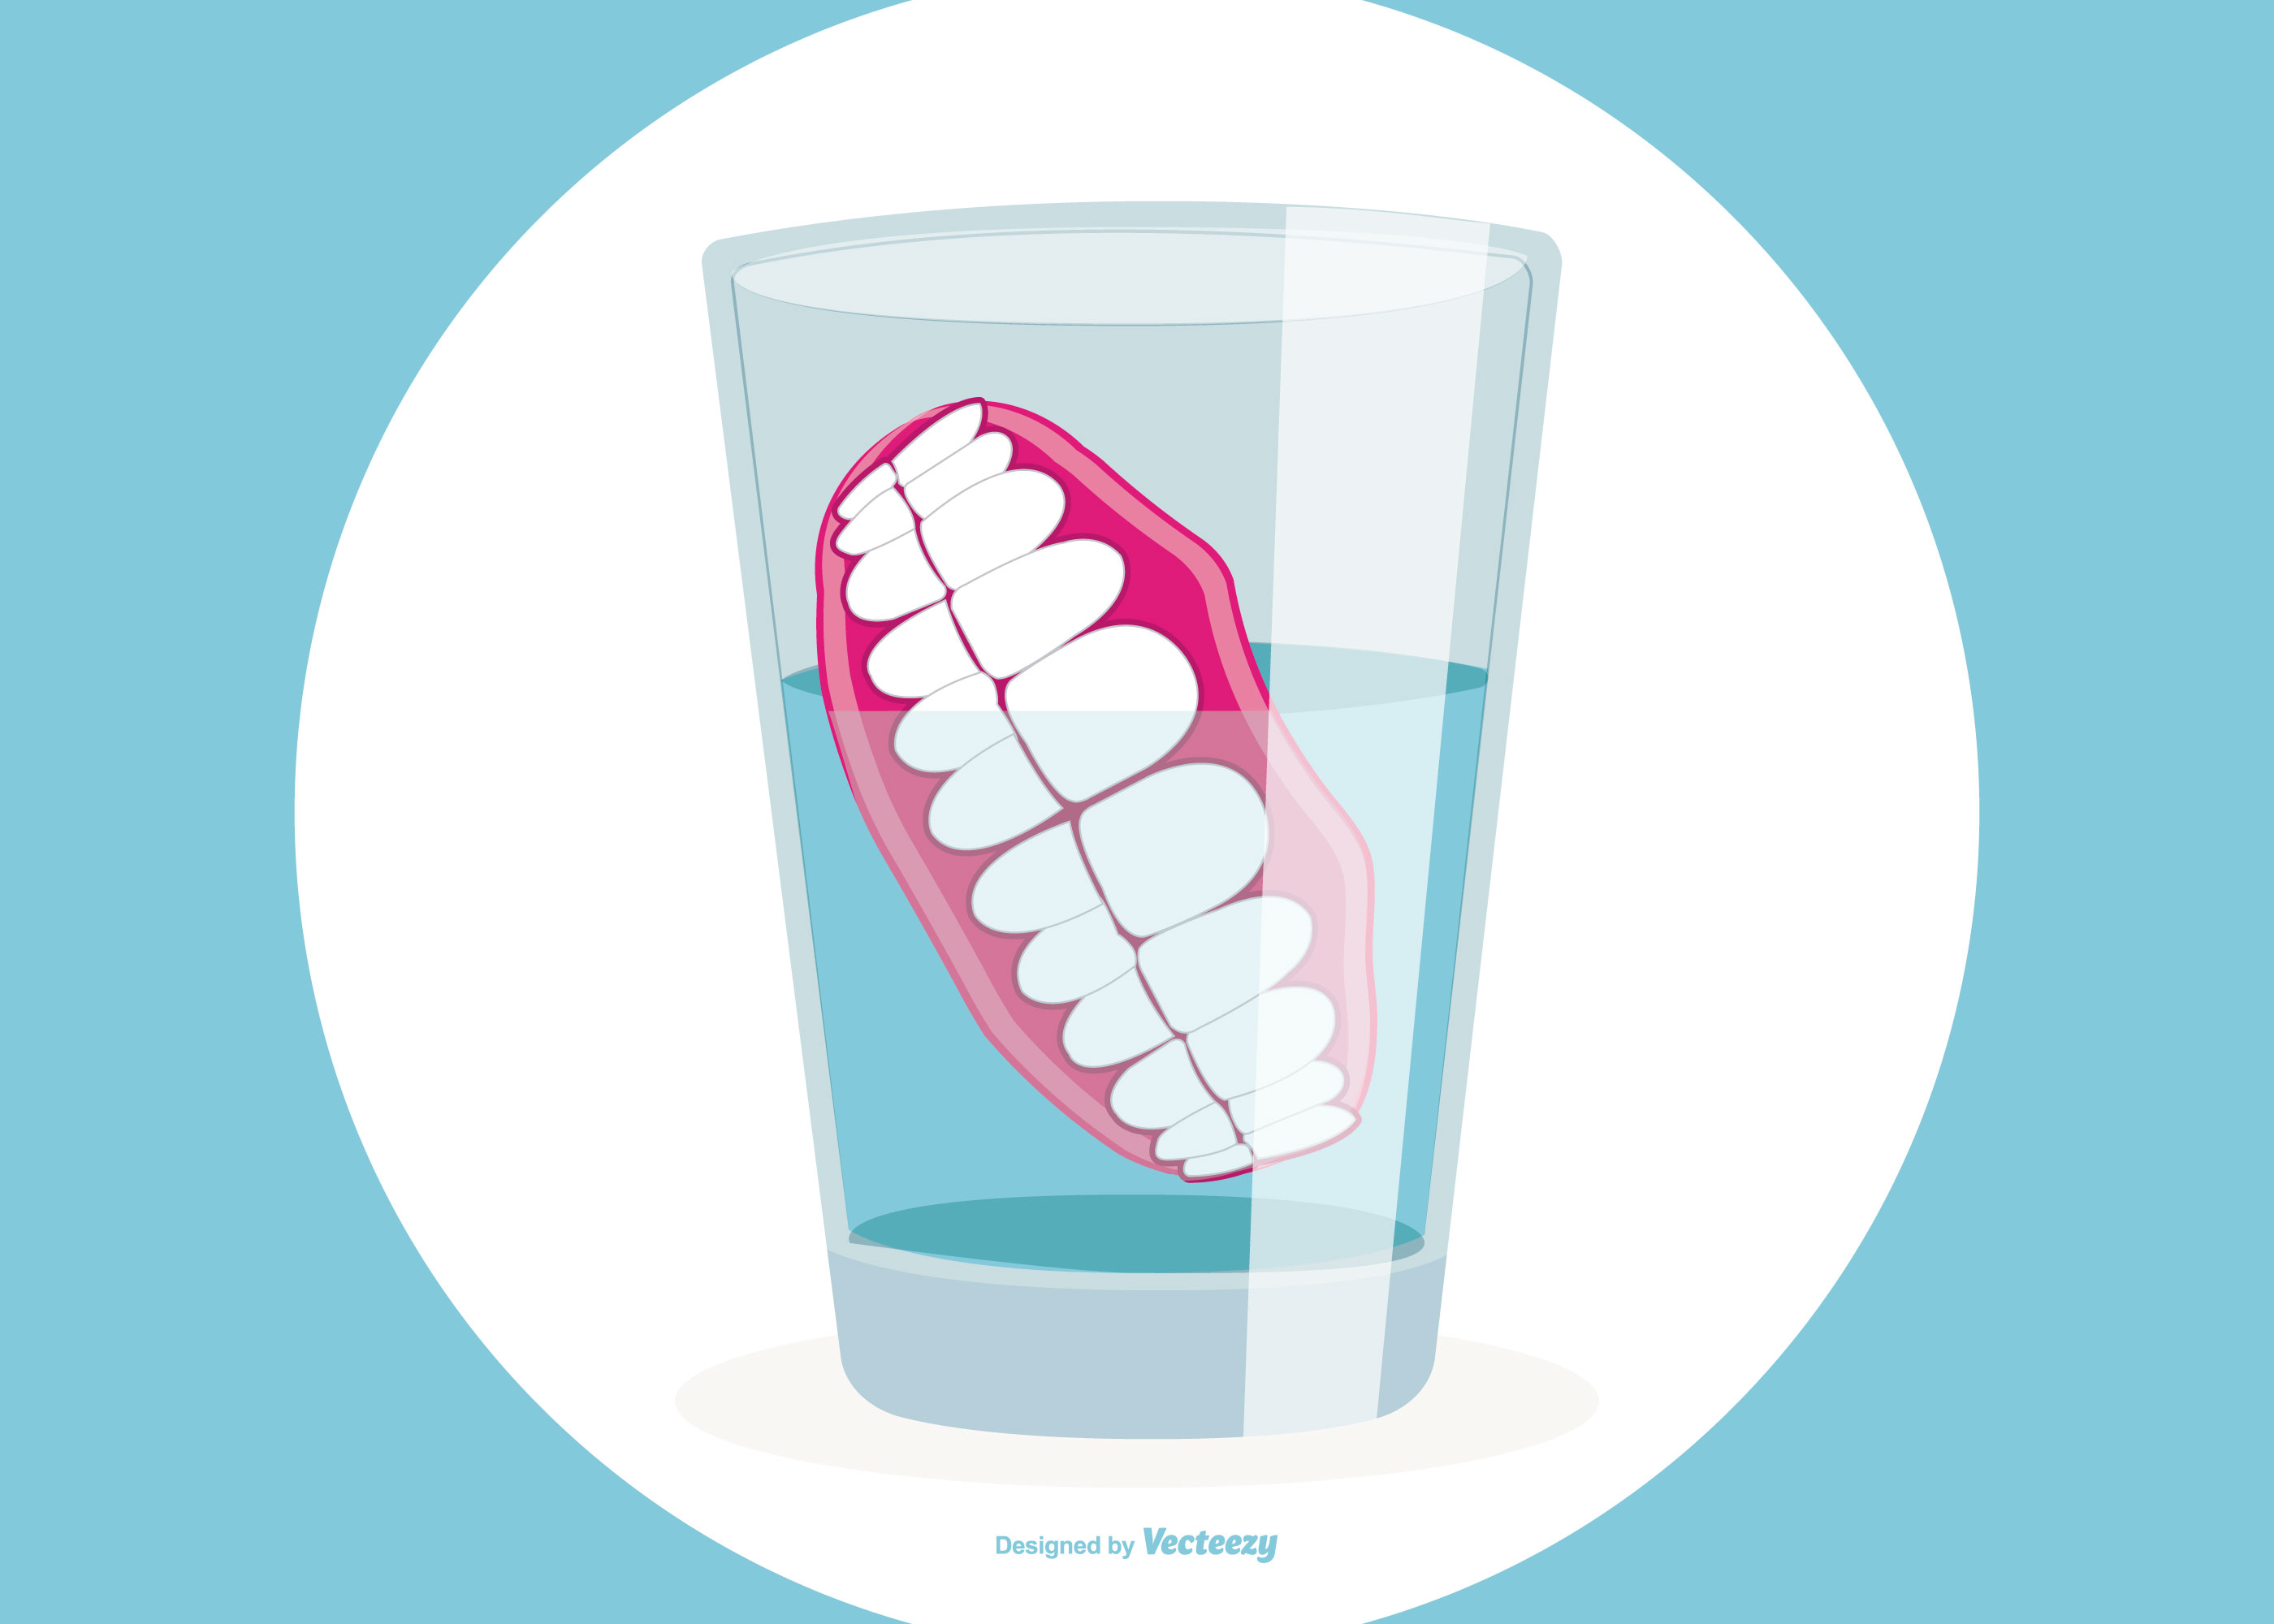 Graphic of dentures in a glass half full of water